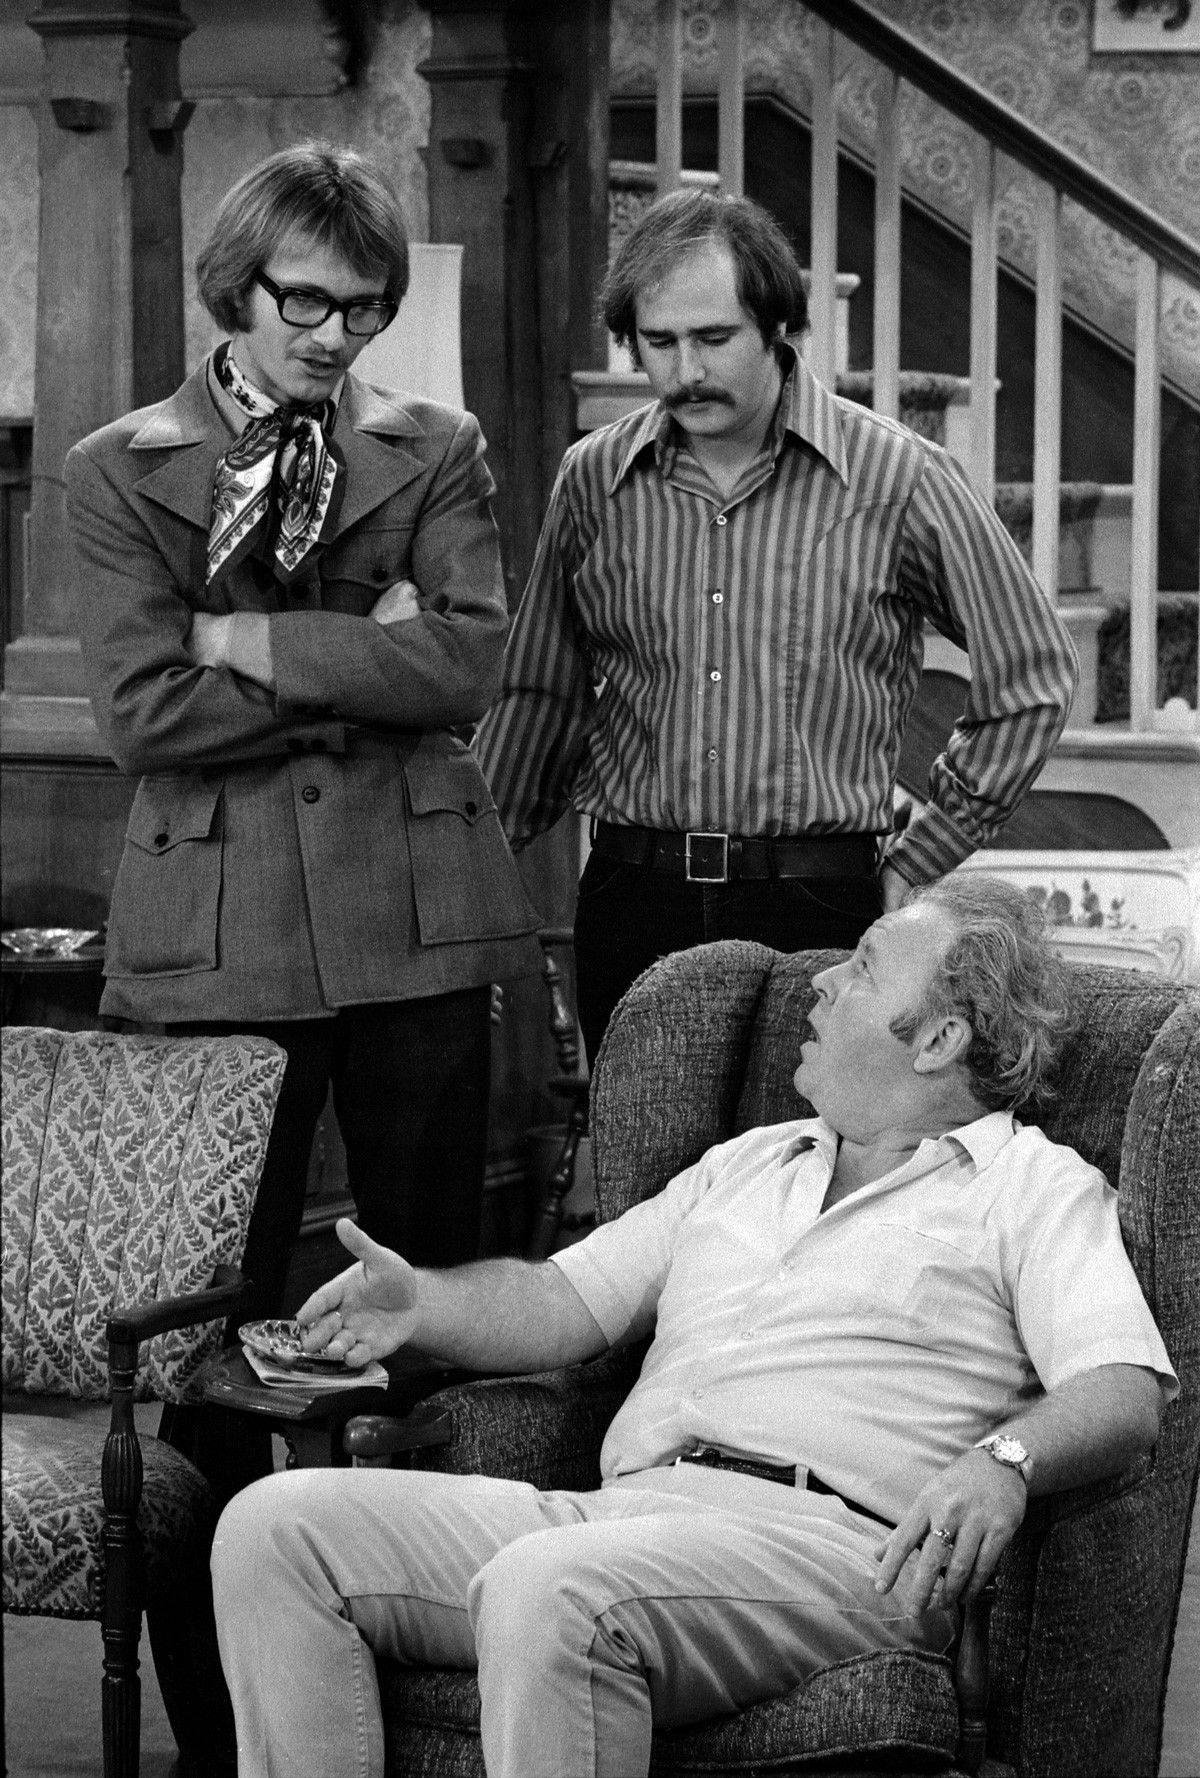 'All in the Family' episode: 'Judging Books by Covers,' featuring (from left) Anthony Geary as Roger, Rob Reiner as Michael Stivic, and Carroll O'Connor (seated) as Archie Bunker (CBS via GettyImages)